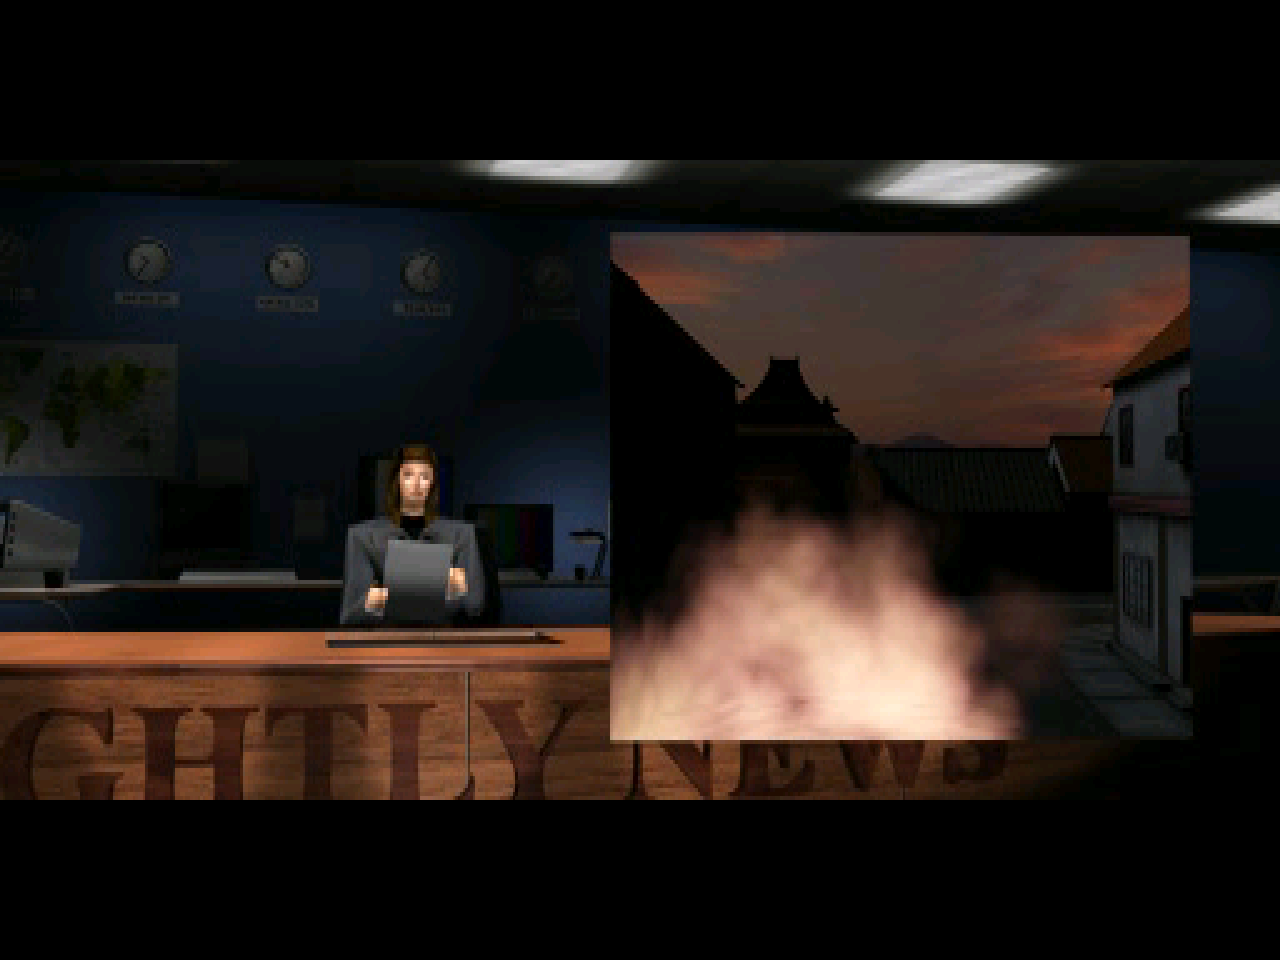 https://s3.eu-west-3.amazonaws.com/games.anthony-dessalles.com/Syphon Filter 2 PS1 2020 - Screenshots/Syphon Filter 2 Disc 1-201126-173557.png